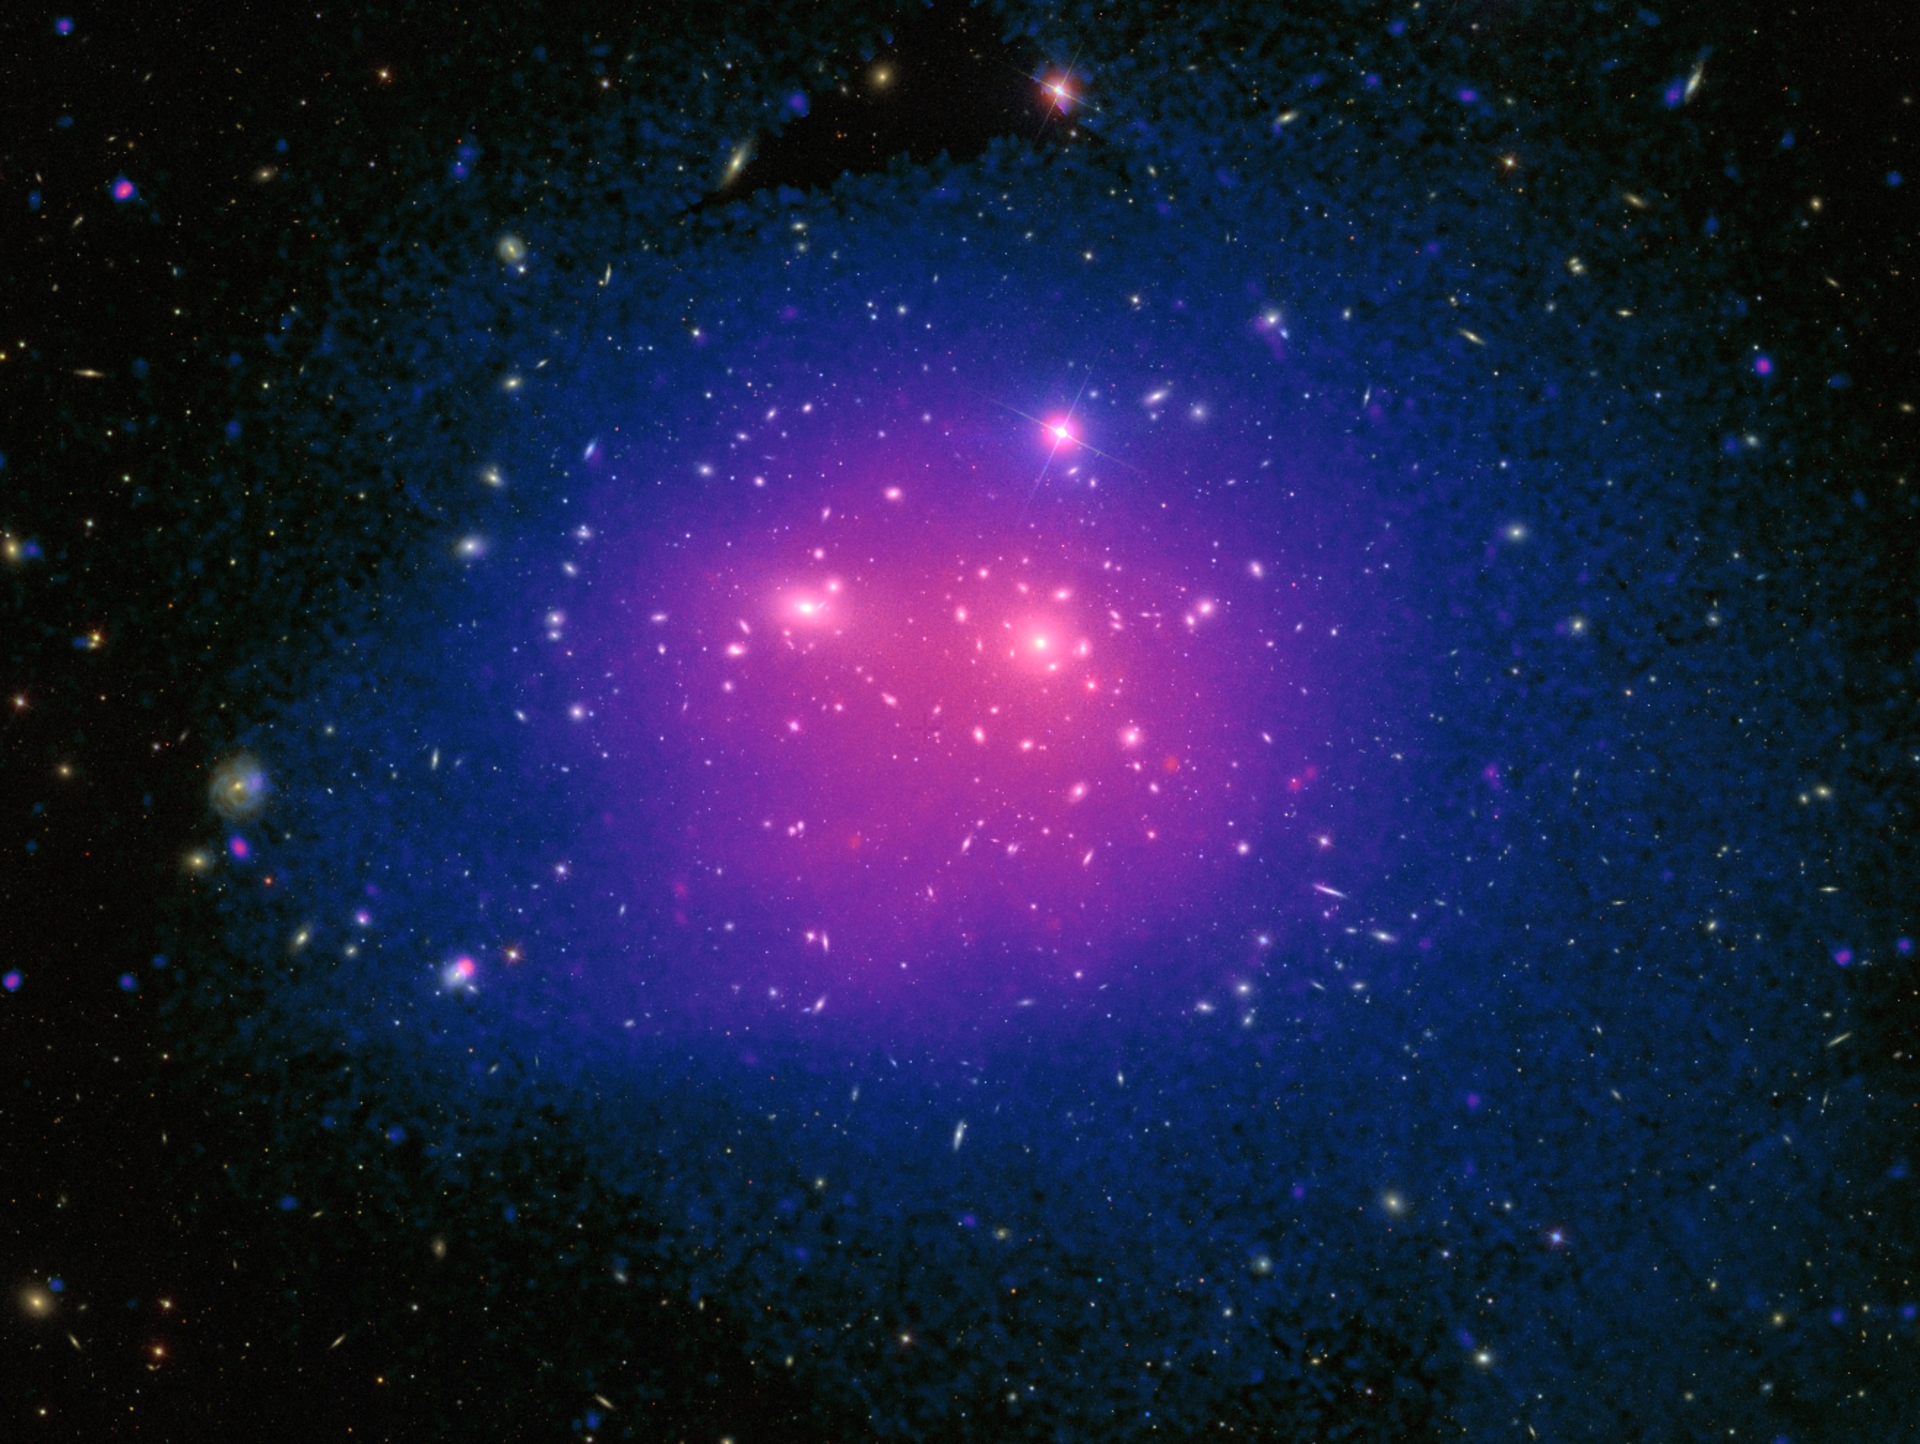 http://www.esa.int/var/esa/storage/images/esa_multimedia/images/2020/01/x-ray_and_optical_view_of_the_coma_galaxy_cluster/21789403-1-eng-GB/X-ray_and_optical_view_of_the_Coma_galaxy_cluster_pillars.png